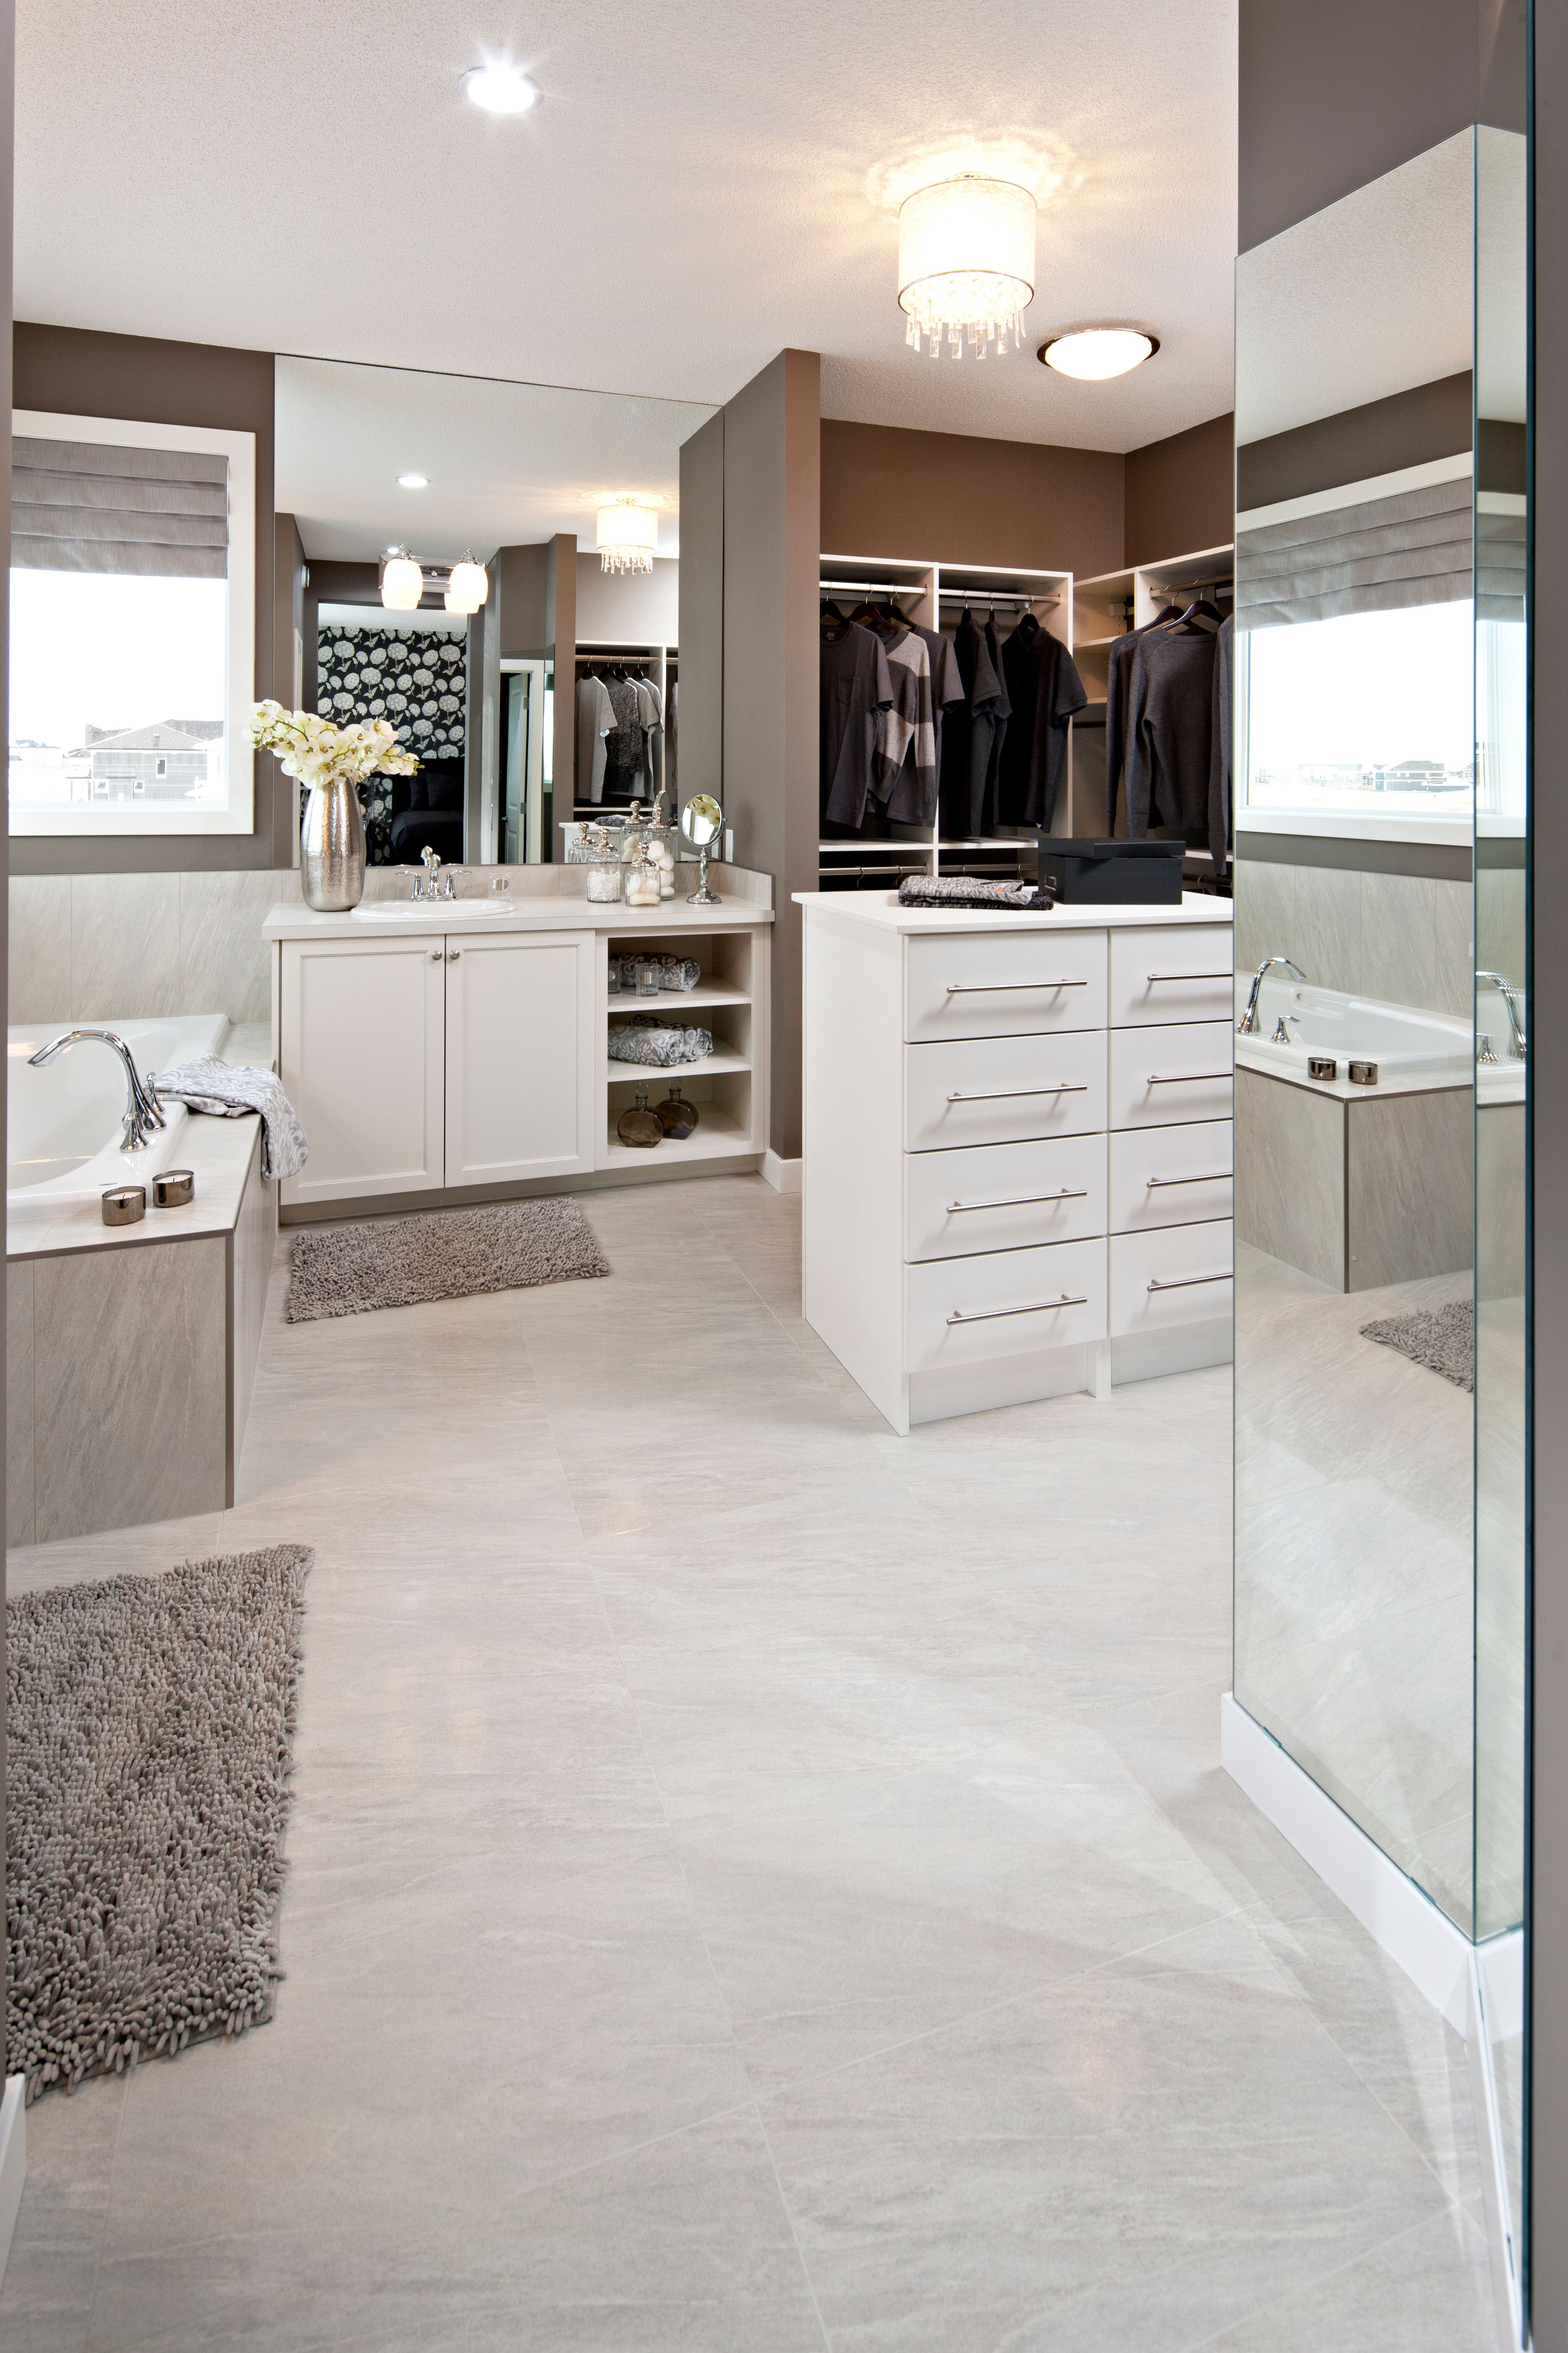 Closet and bathroom combined. Great use of space! | Bathroom ...